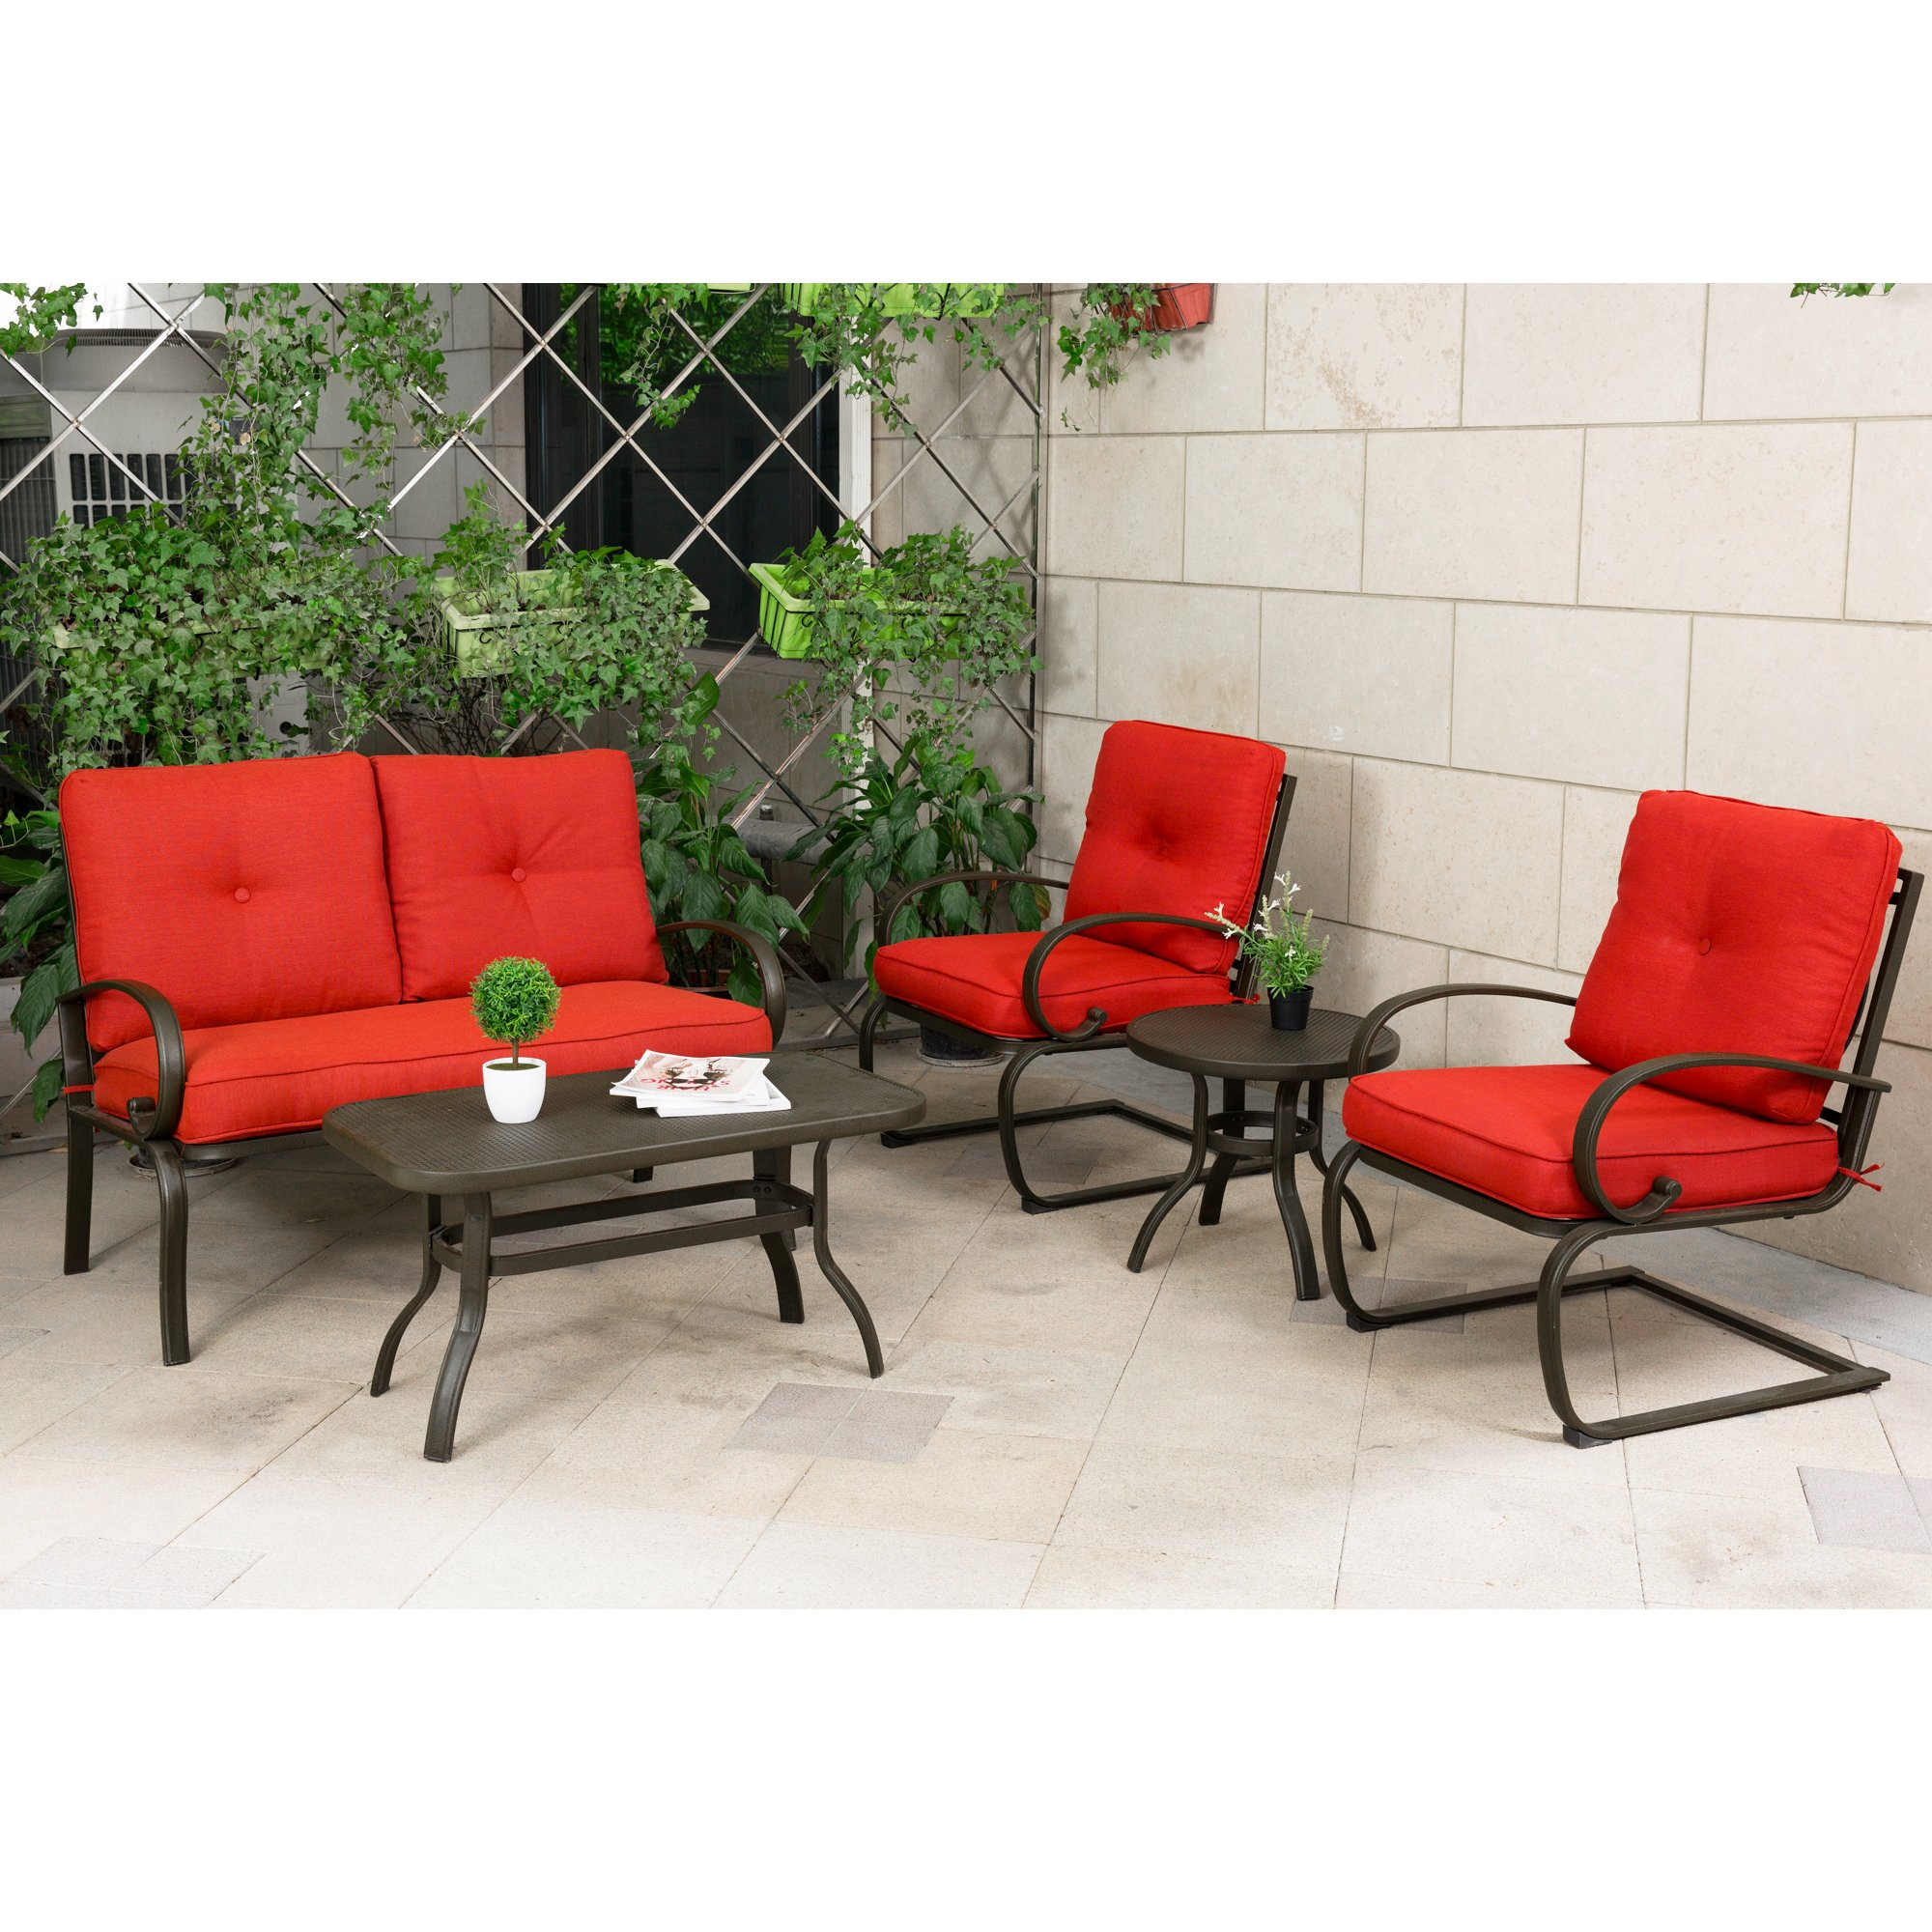 Cloud mountain 5 piece metal conversation set cushioned outdoor furniture garden patio wrought iron conversation set with coffee table loveseat sofa 2